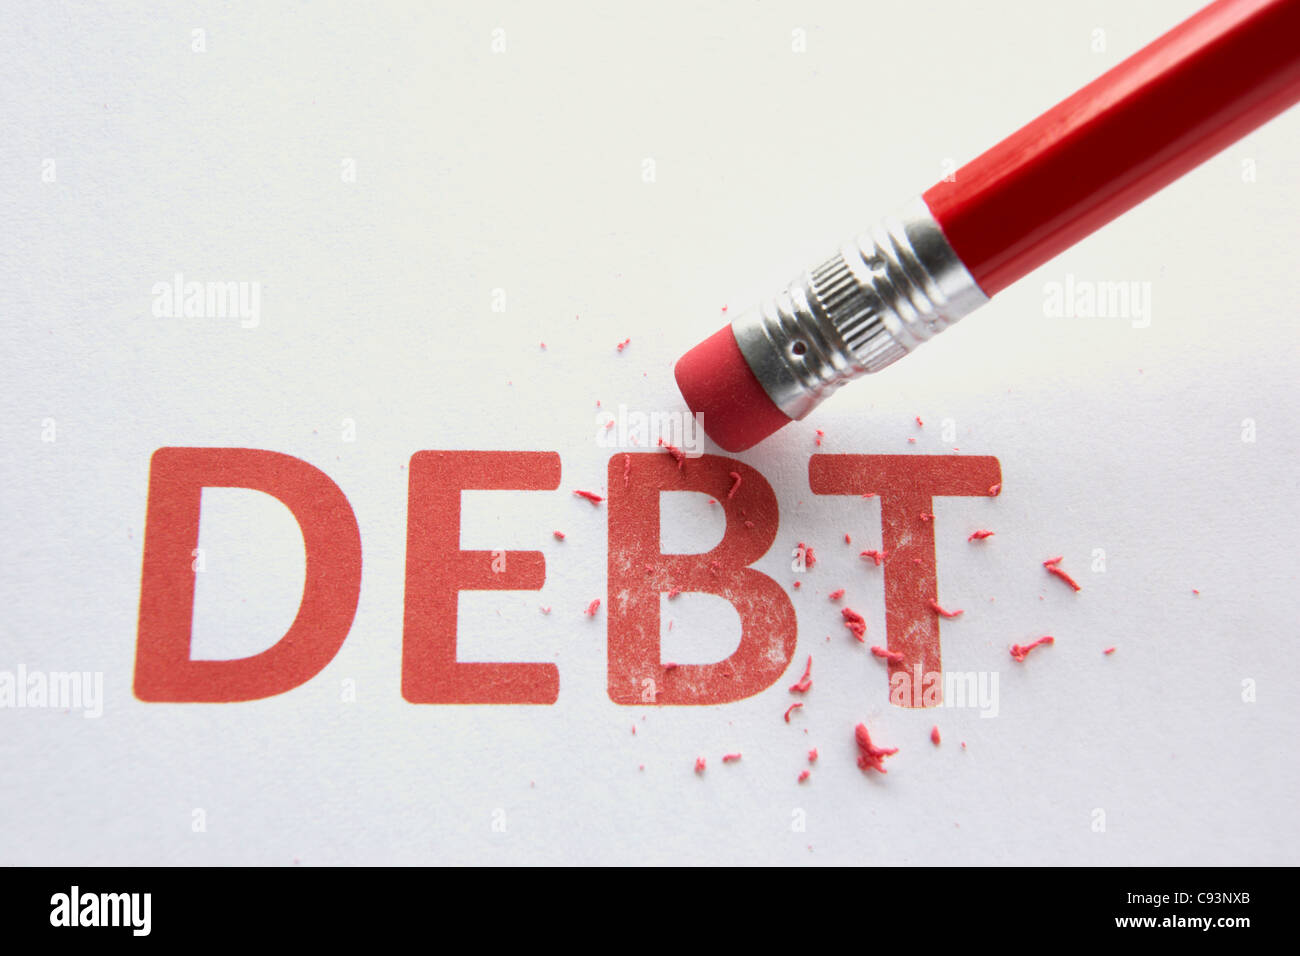 Wiping out debt - Stock Image